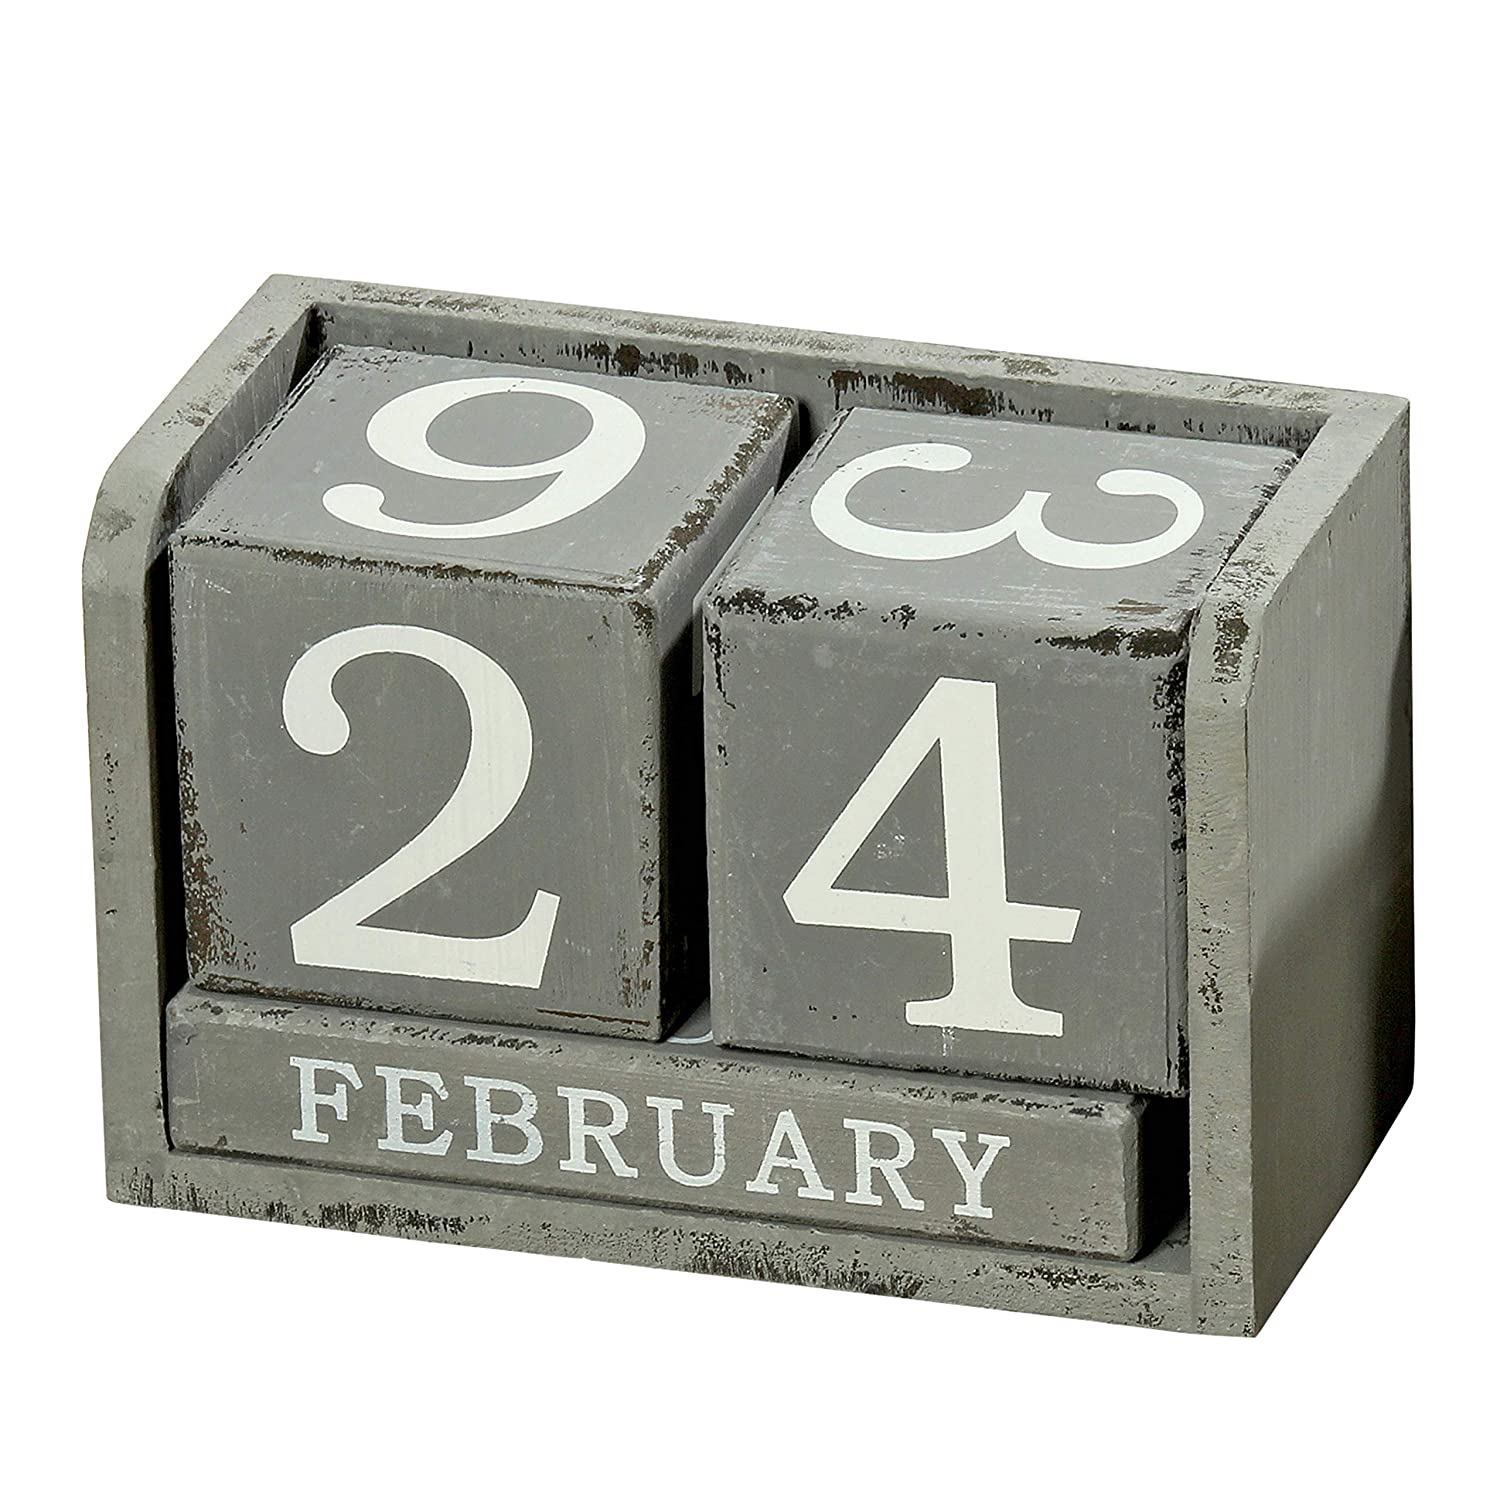 Modernist Perpetual Wood Cube Calendar, Desktop Accessory, White Numerals, Shabby Style, Rustic Gray Finish Over Black Stain, 5 Piece Set, MDF, 5 1/2 L x 2 3/4 W x 3 1/2 H Inches